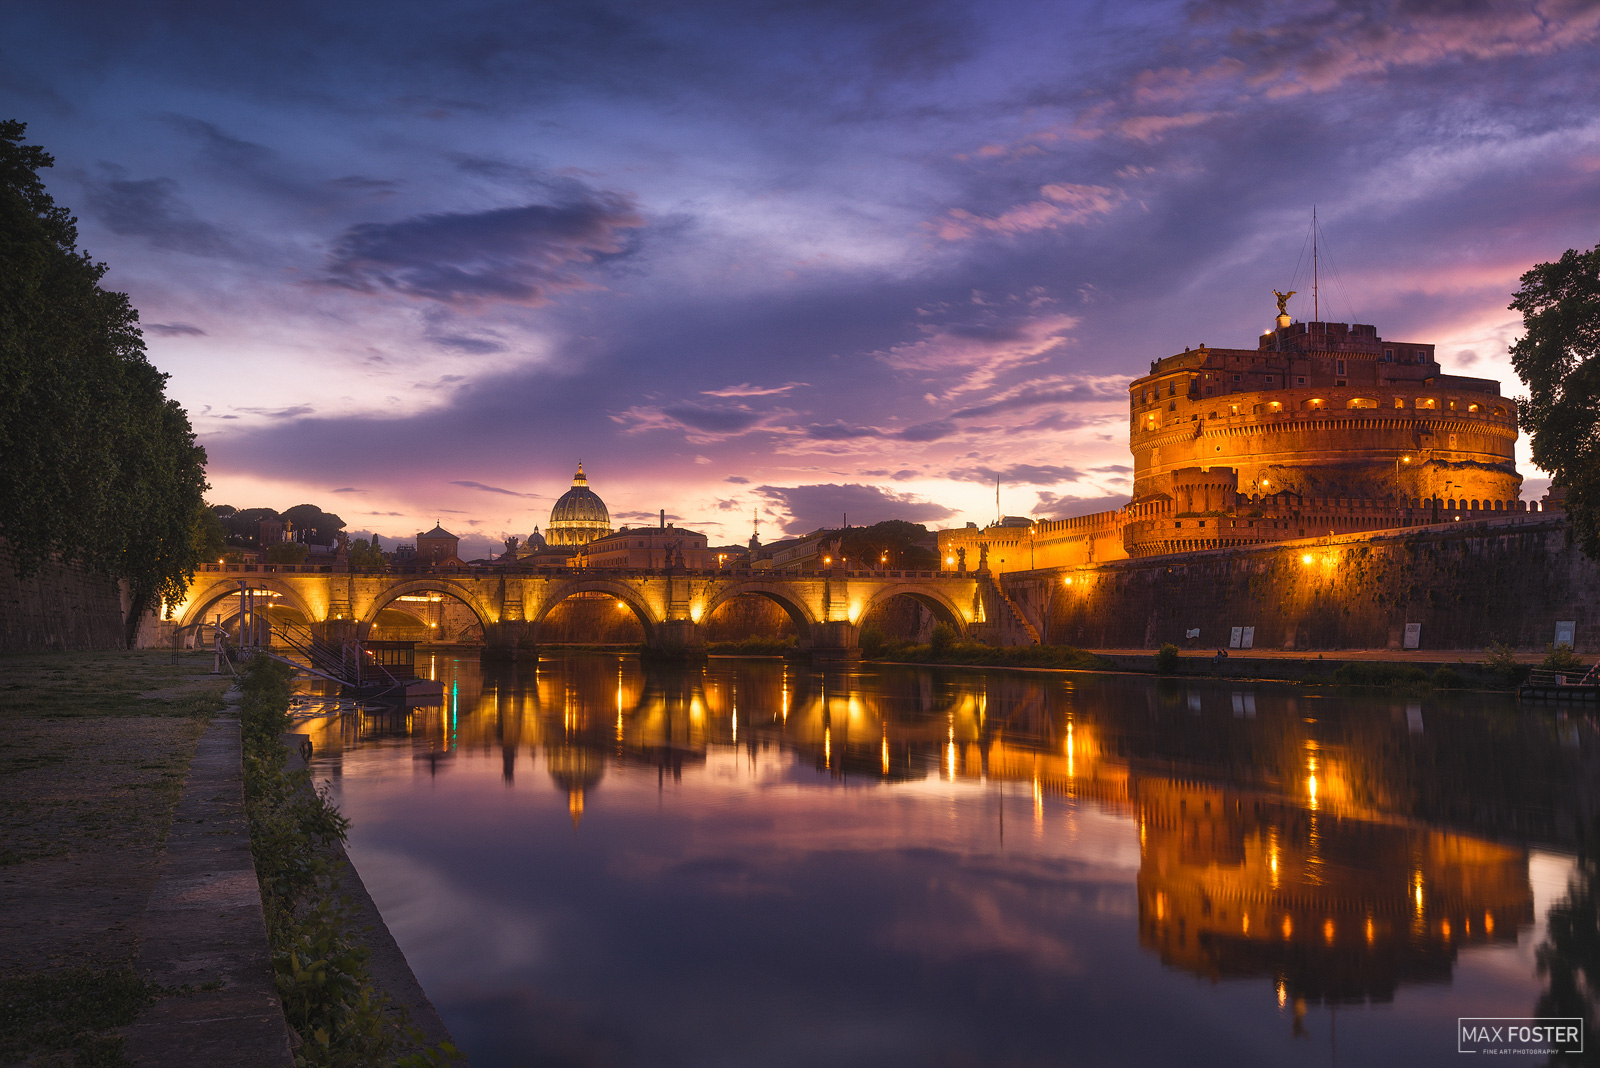 Castel Sant'Angelo, Rome, Italy, Mausoleum of Hadrian, fortress, castle, Angels & Demons, Angels, Demons, photo